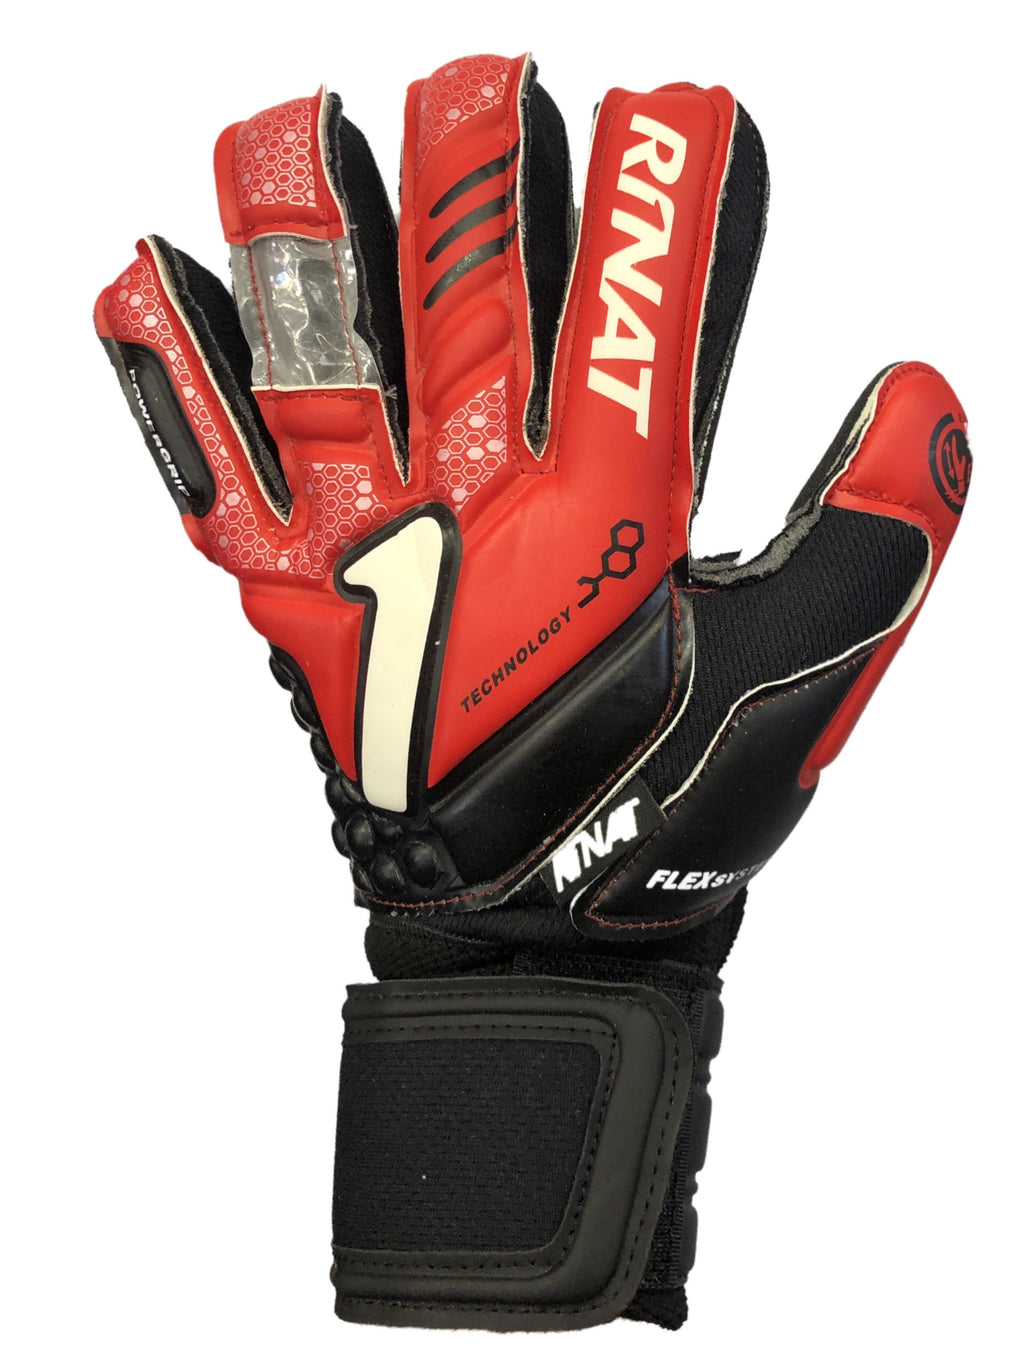 Rinat Arkano USA Spine Gloves